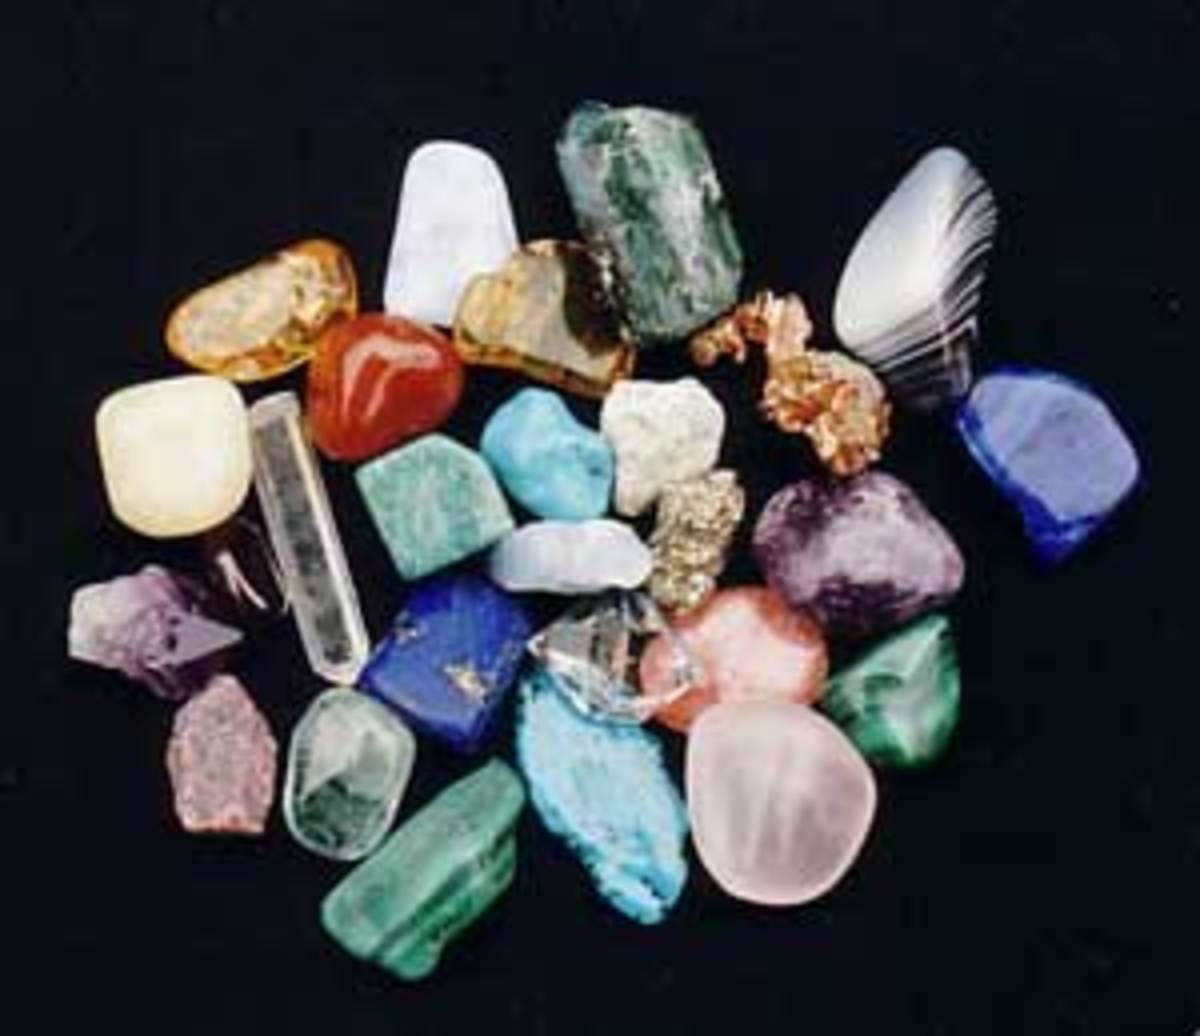 Healing autism and Asperger's syndrome with crystals and stones